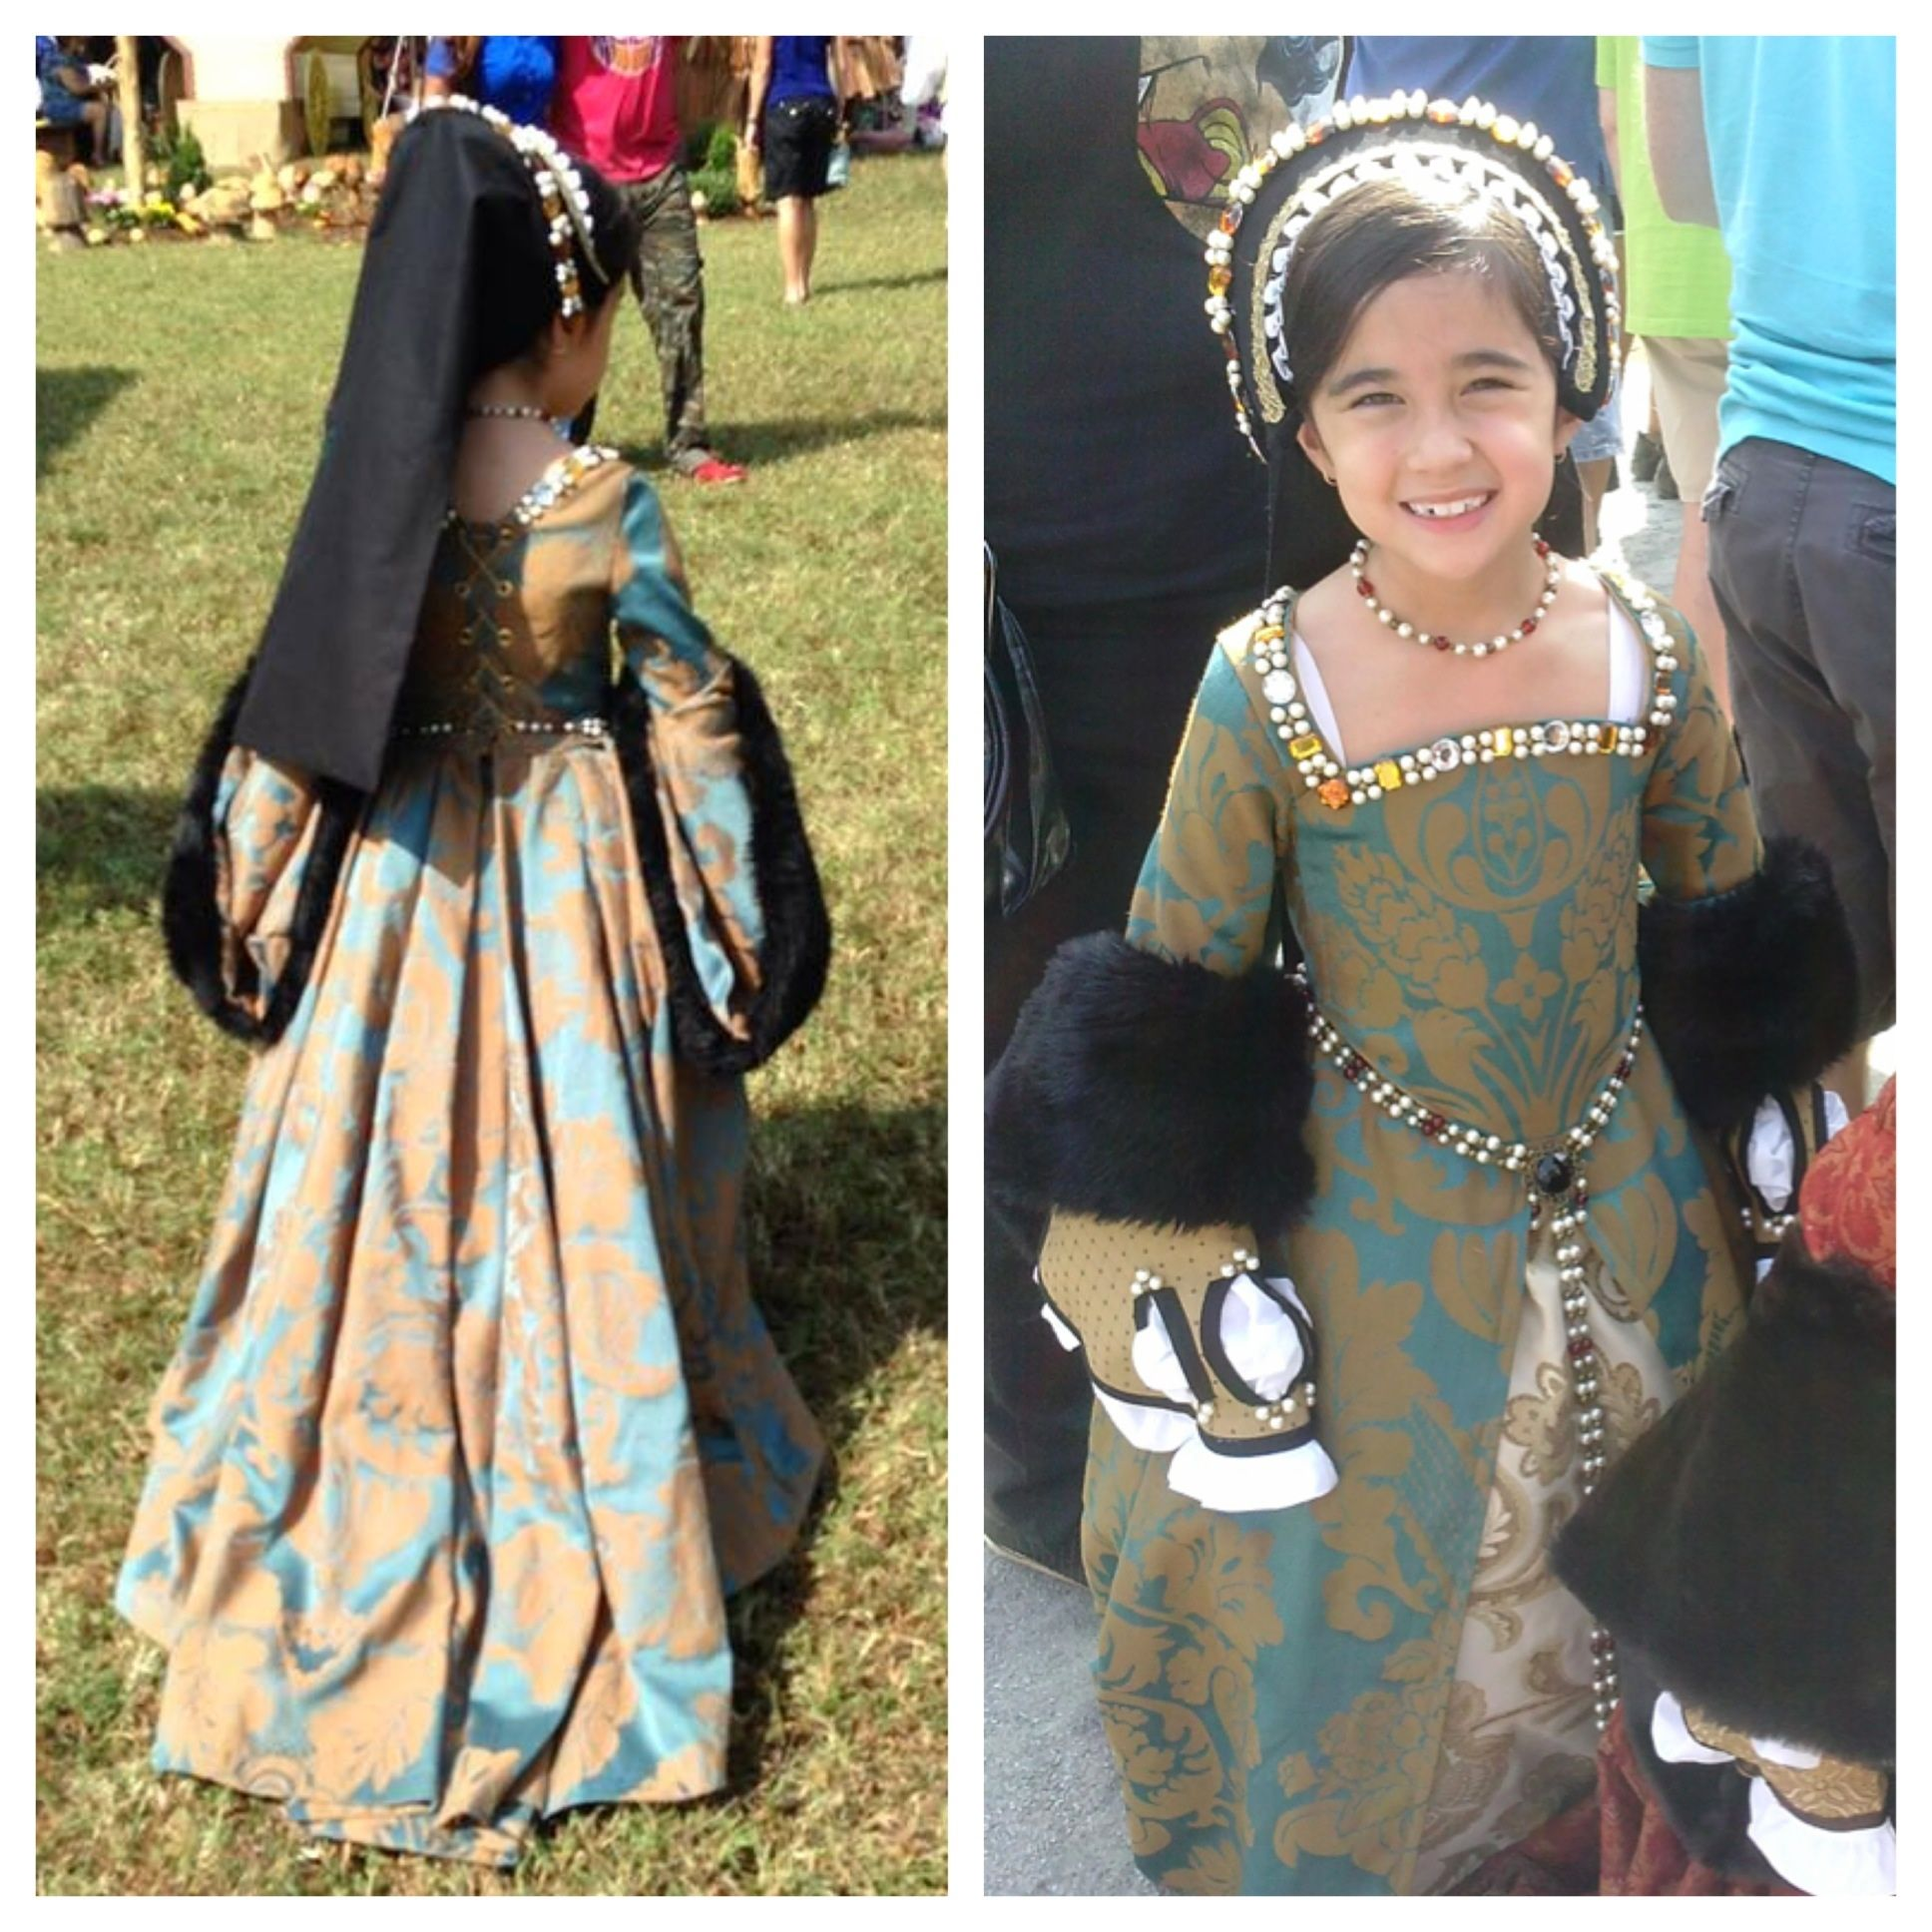 Teal/Gold Tudor Outfit - made for the 2013 Renaissance Festival. dress gown henrican  sc 1 st  Pinterest & Teal/Gold Tudor Outfit - made for the 2013 Renaissance Festival ...